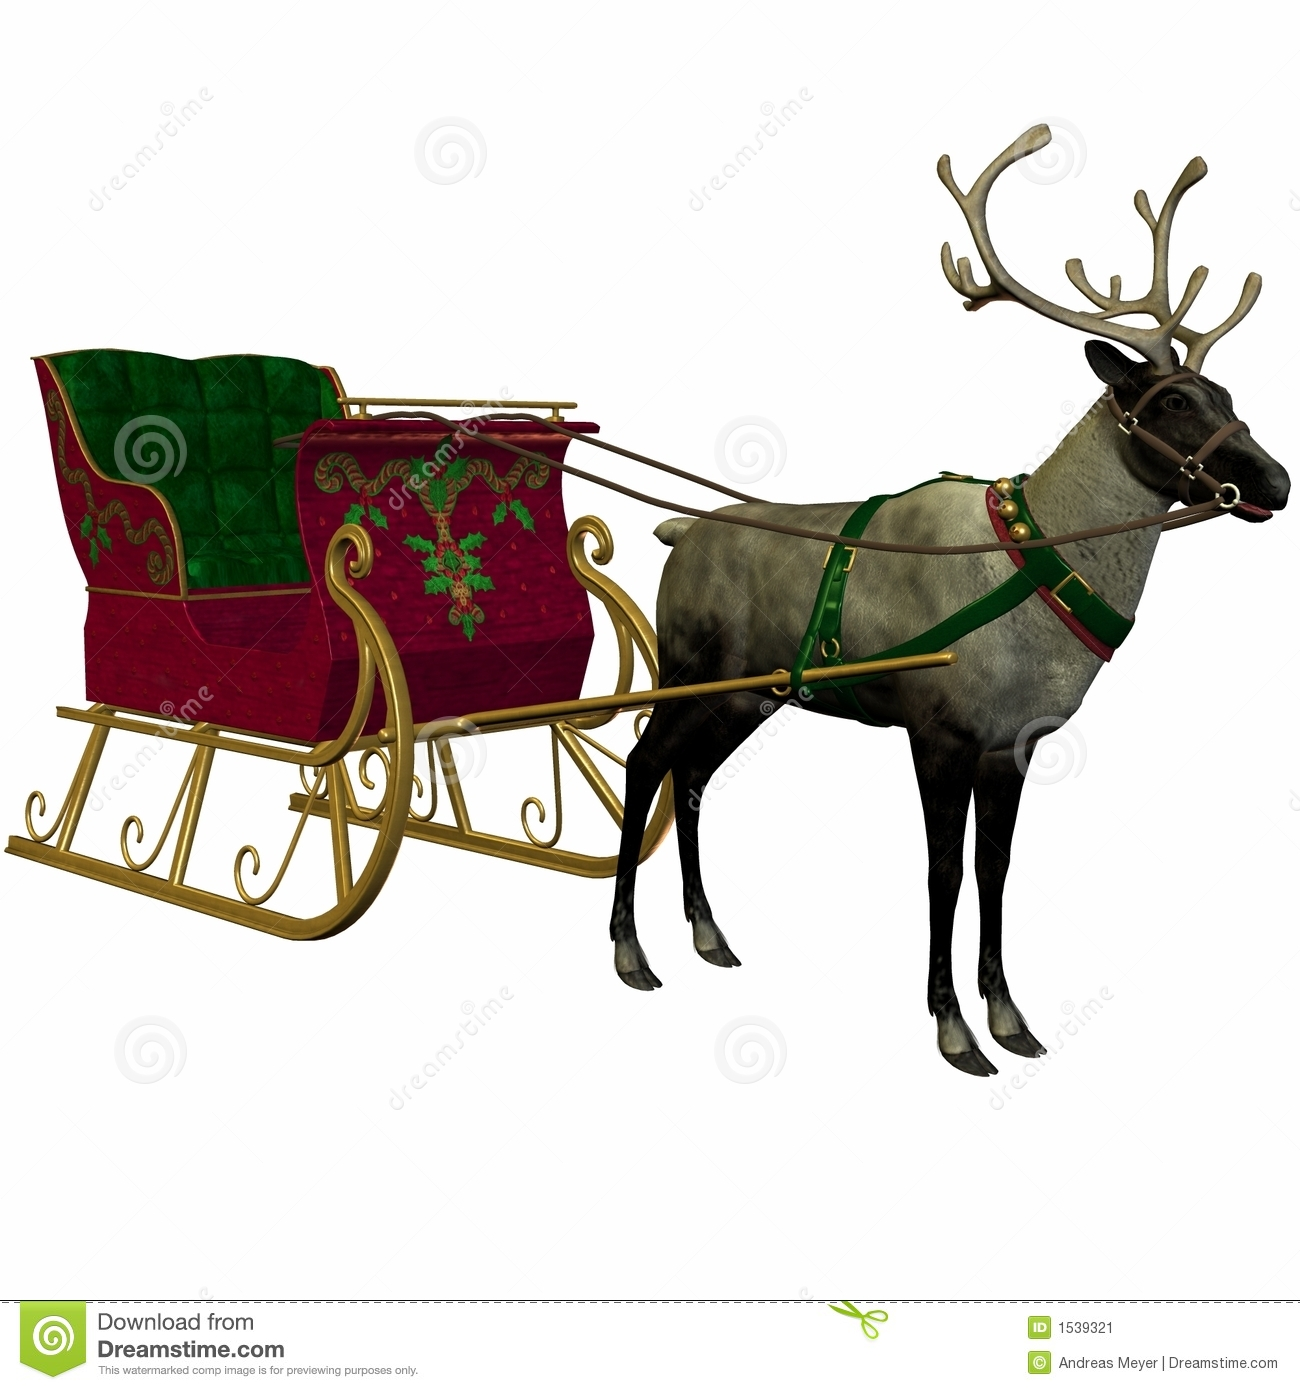 More similar stock images of ` Reindeer and Sleigh `